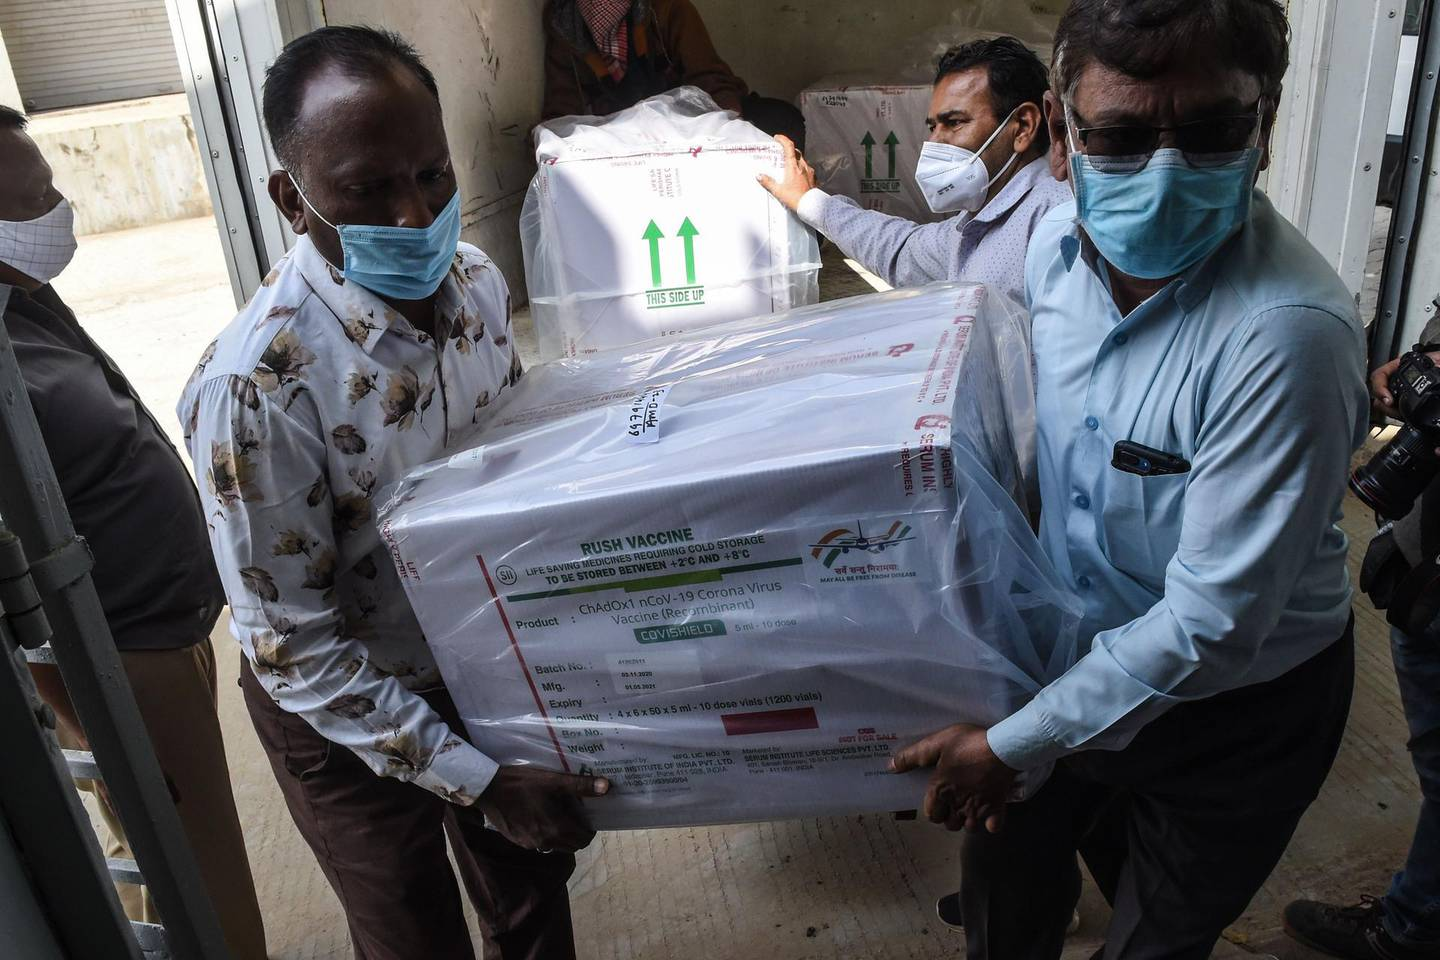 Officials unload boxes containing Covishield vaccine at the Regional Vaccine Store in Ahmedabad on January 12, 2021. / AFP / SAM PANTHAKY